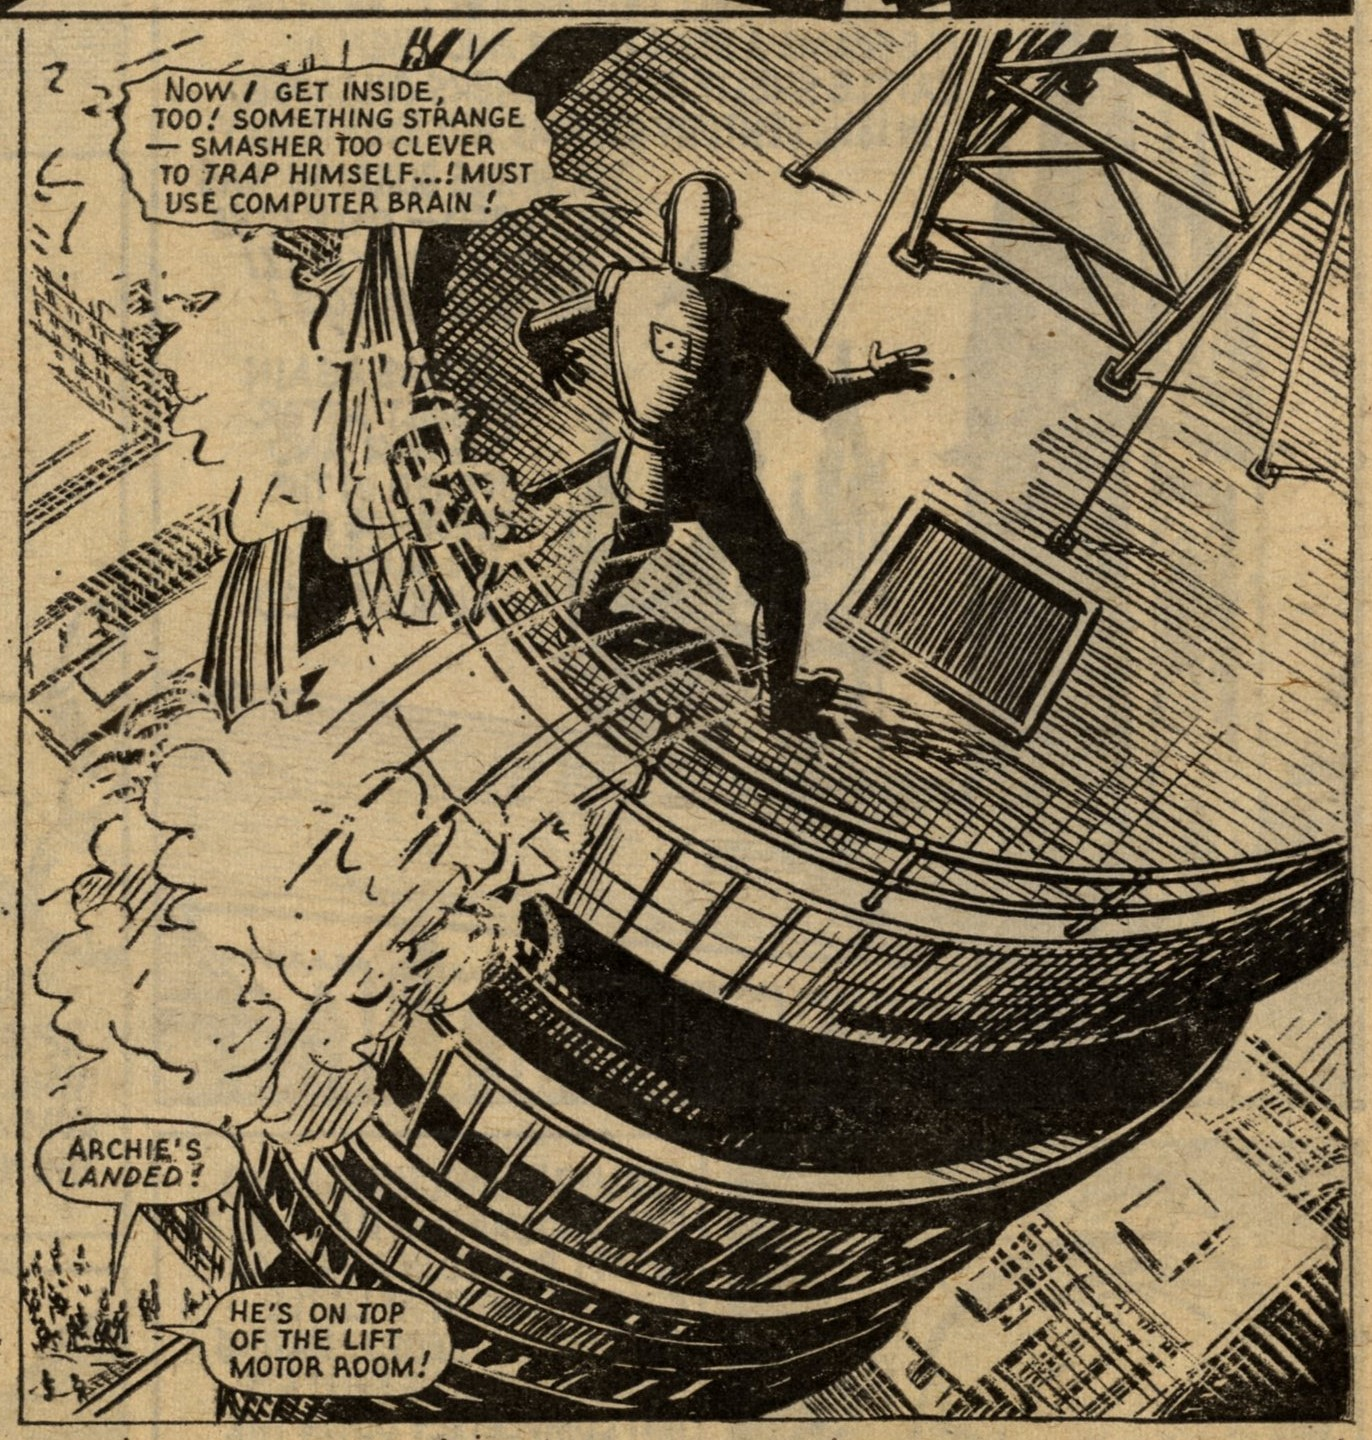 Robot Archie Fights The Smasher: E. George Cowan (writer), Ted Kearon (artist)